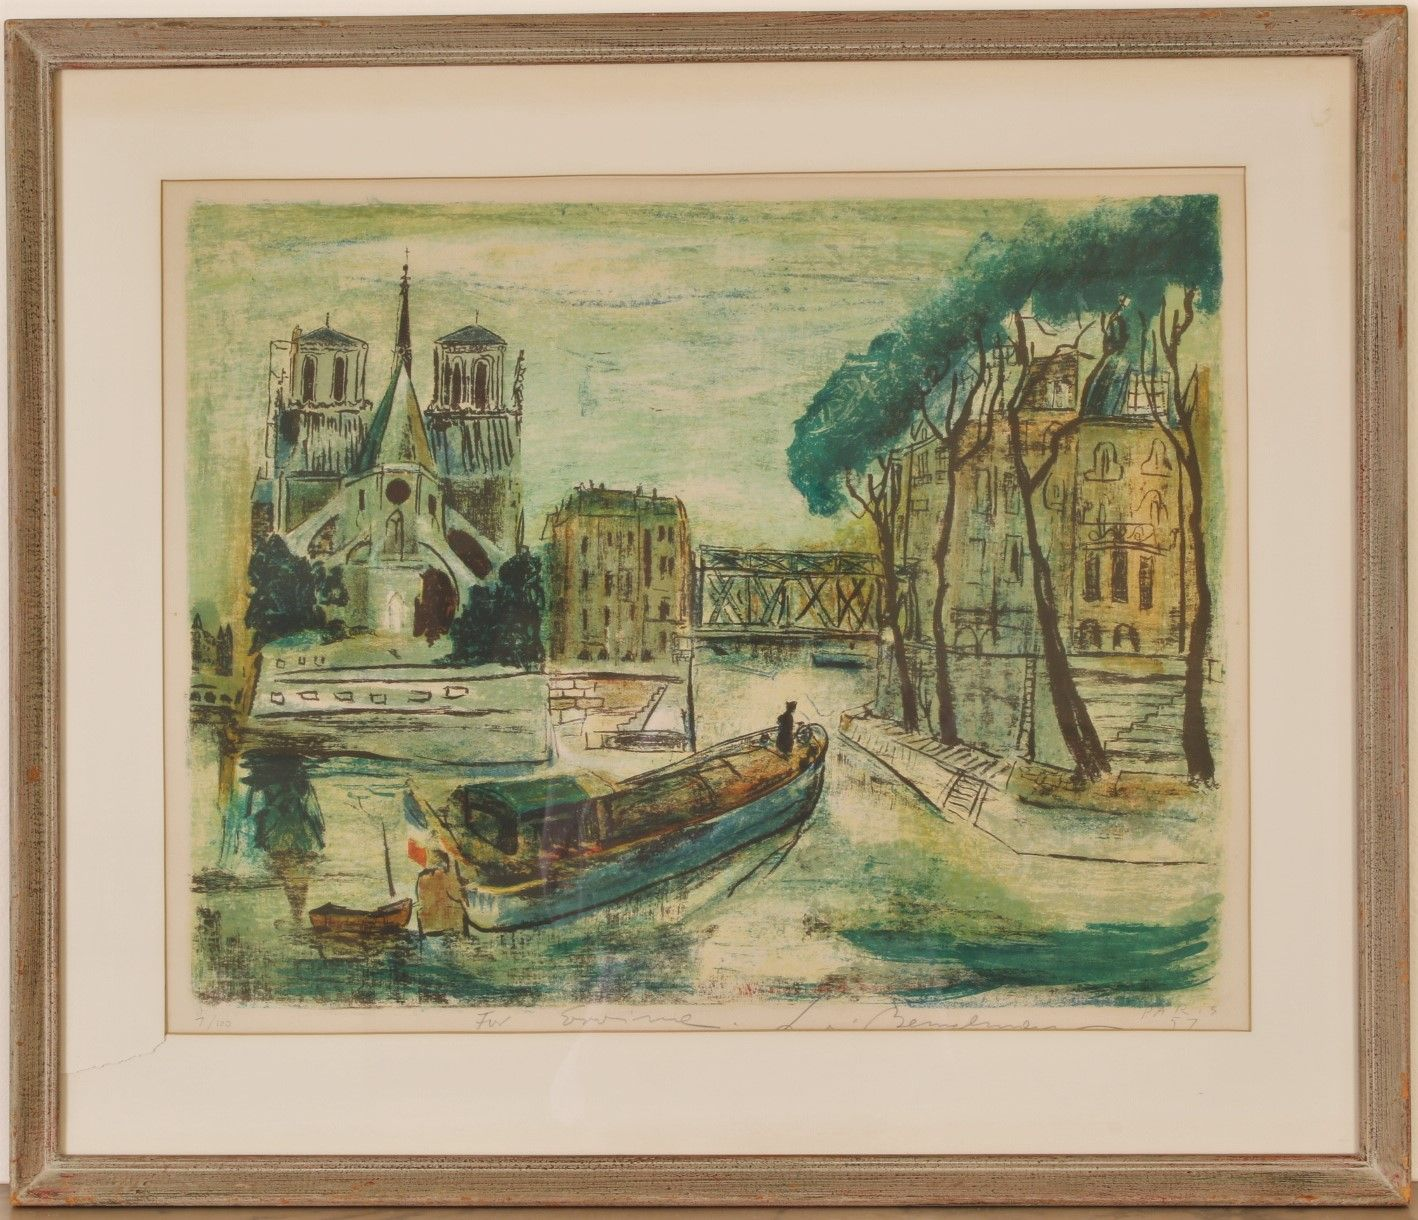 LUDWIG BEMELMANS (1898-1962) (of Madeleine fame), HAND COLORED LIMITED EDITION PRINT VIEW OF NOTRE DAME FROM THE SEINE.